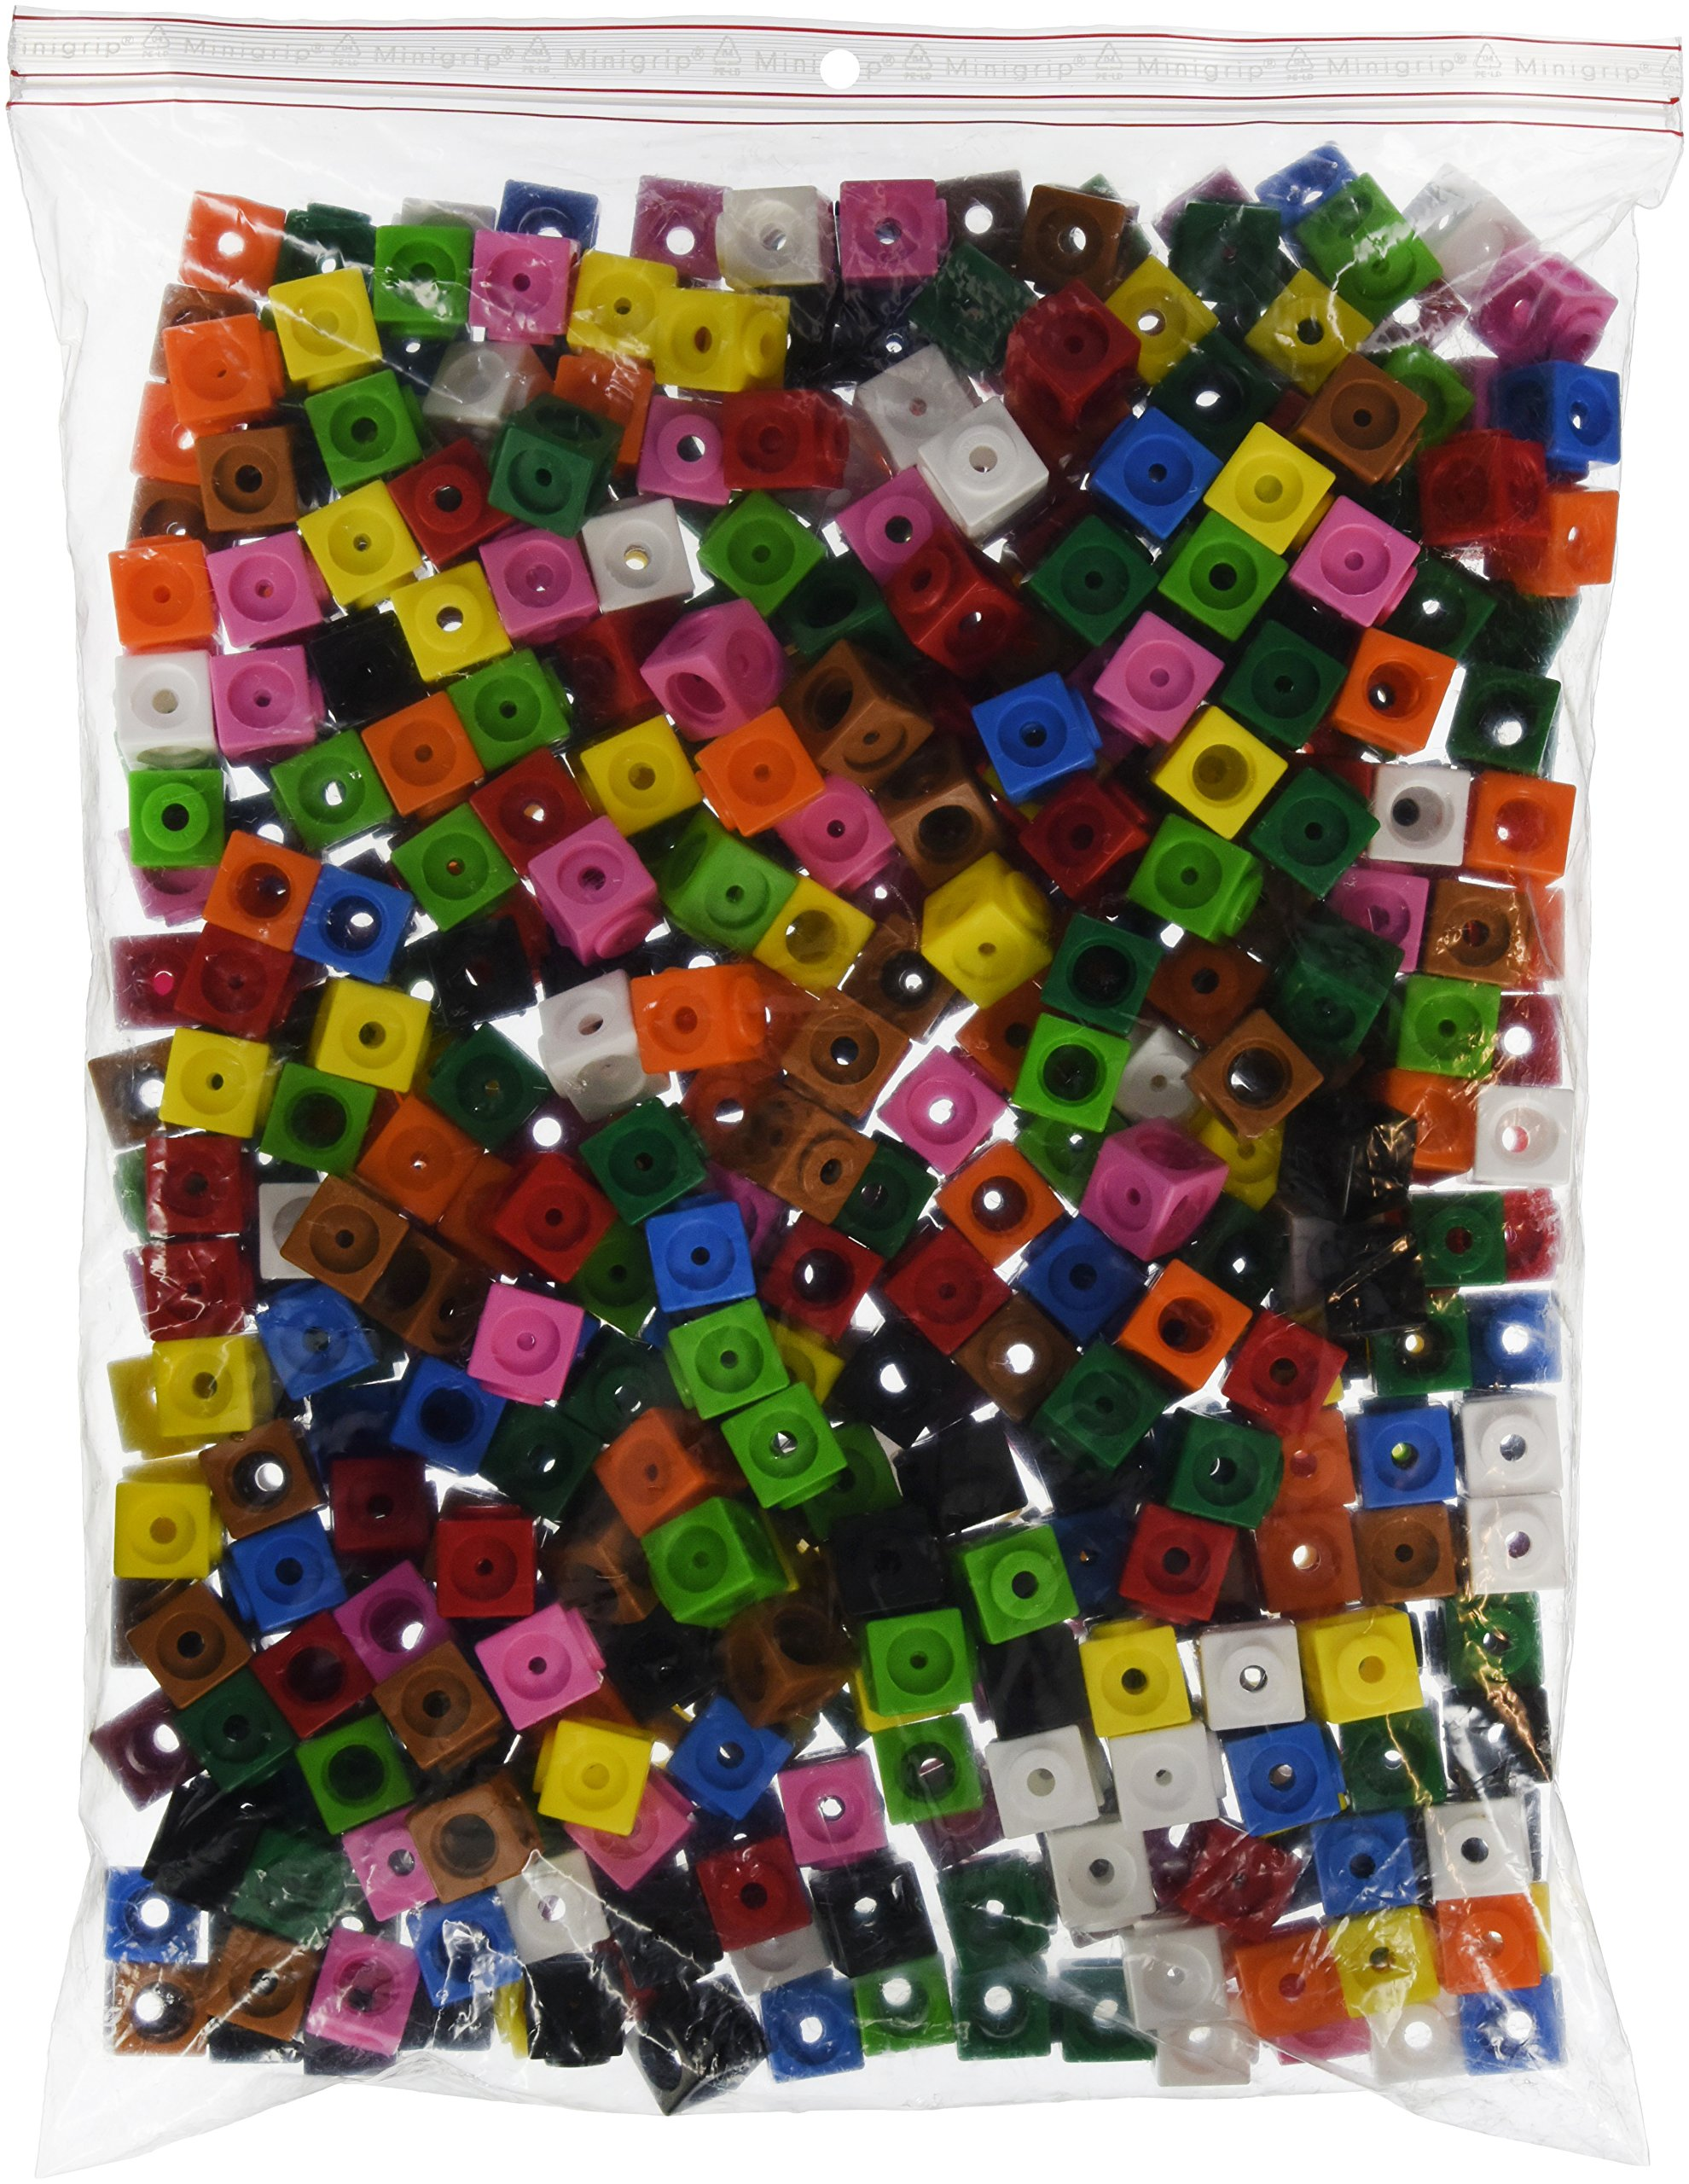 Dick System 200100500Jigsaw Puzzle Edge Length 2cm, 10Assorted